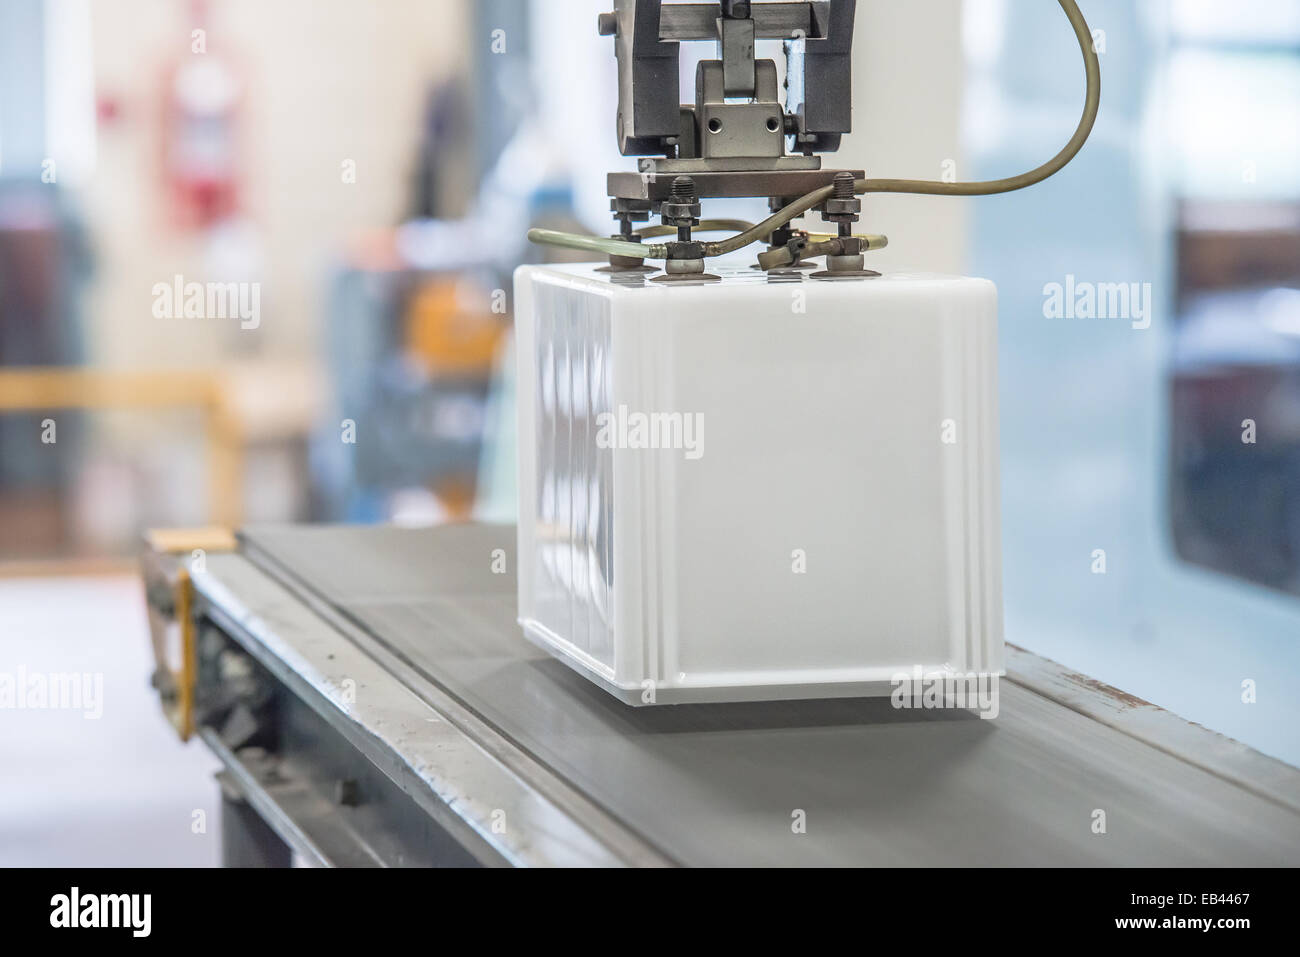 Industrial robot working in factory - Stock Image